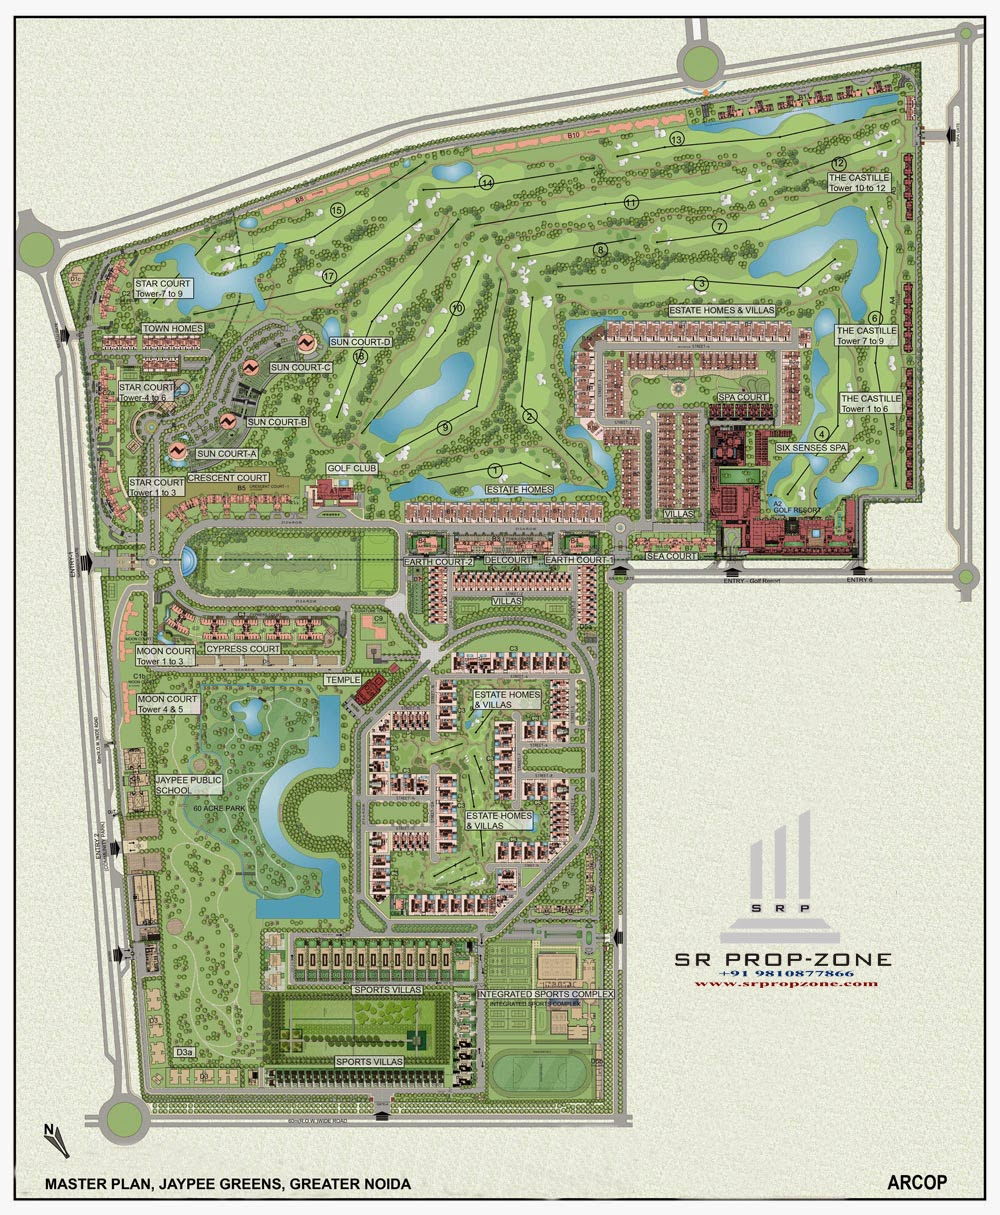 Jaypee greens flats in greater noida flats and apartment for Apartment master plans